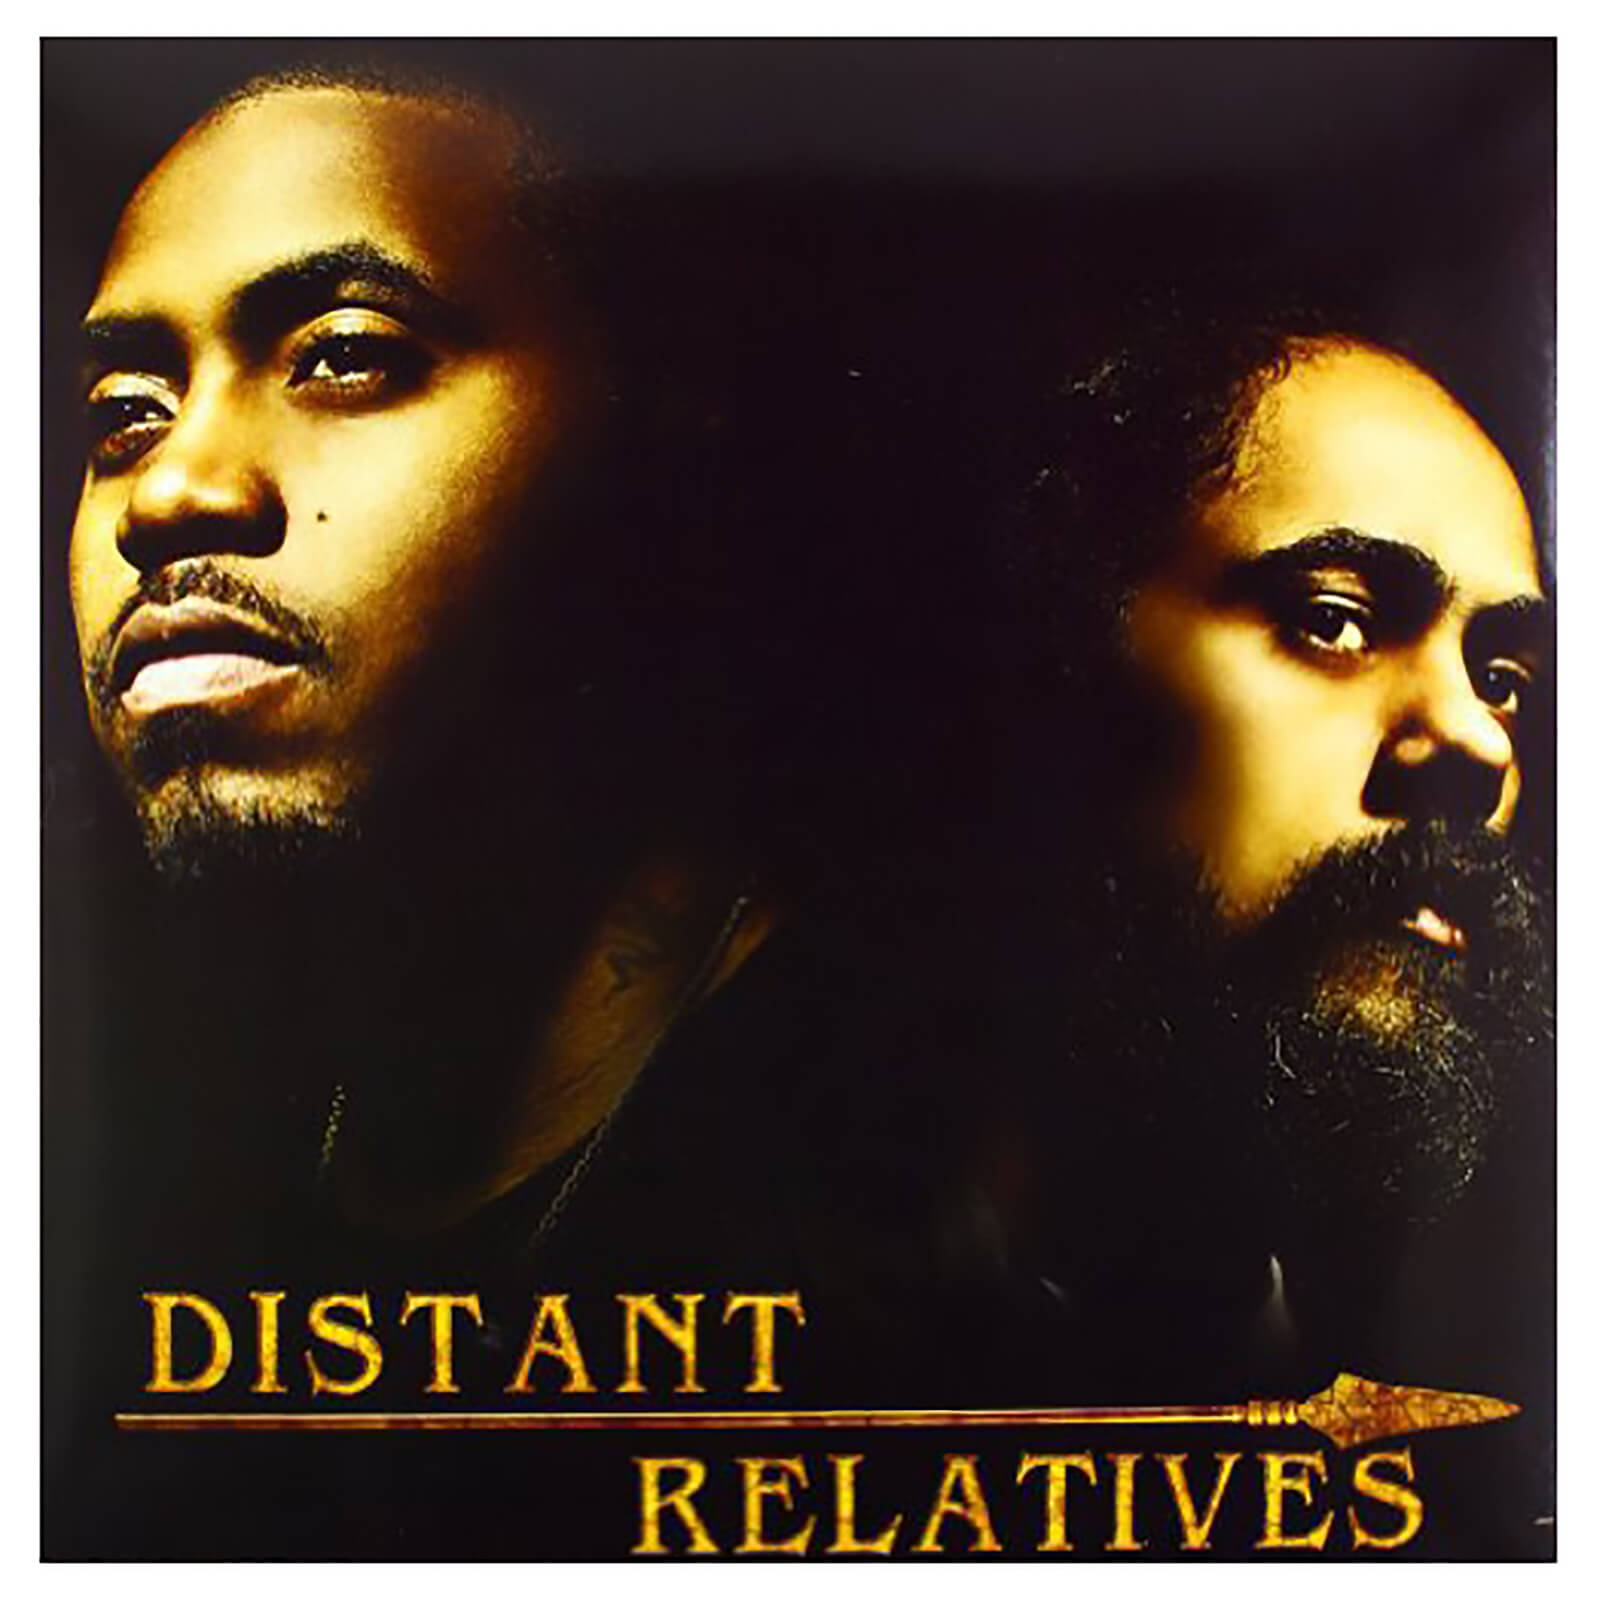 Nas / Damian Marley - Distant Relatives - Vinyl